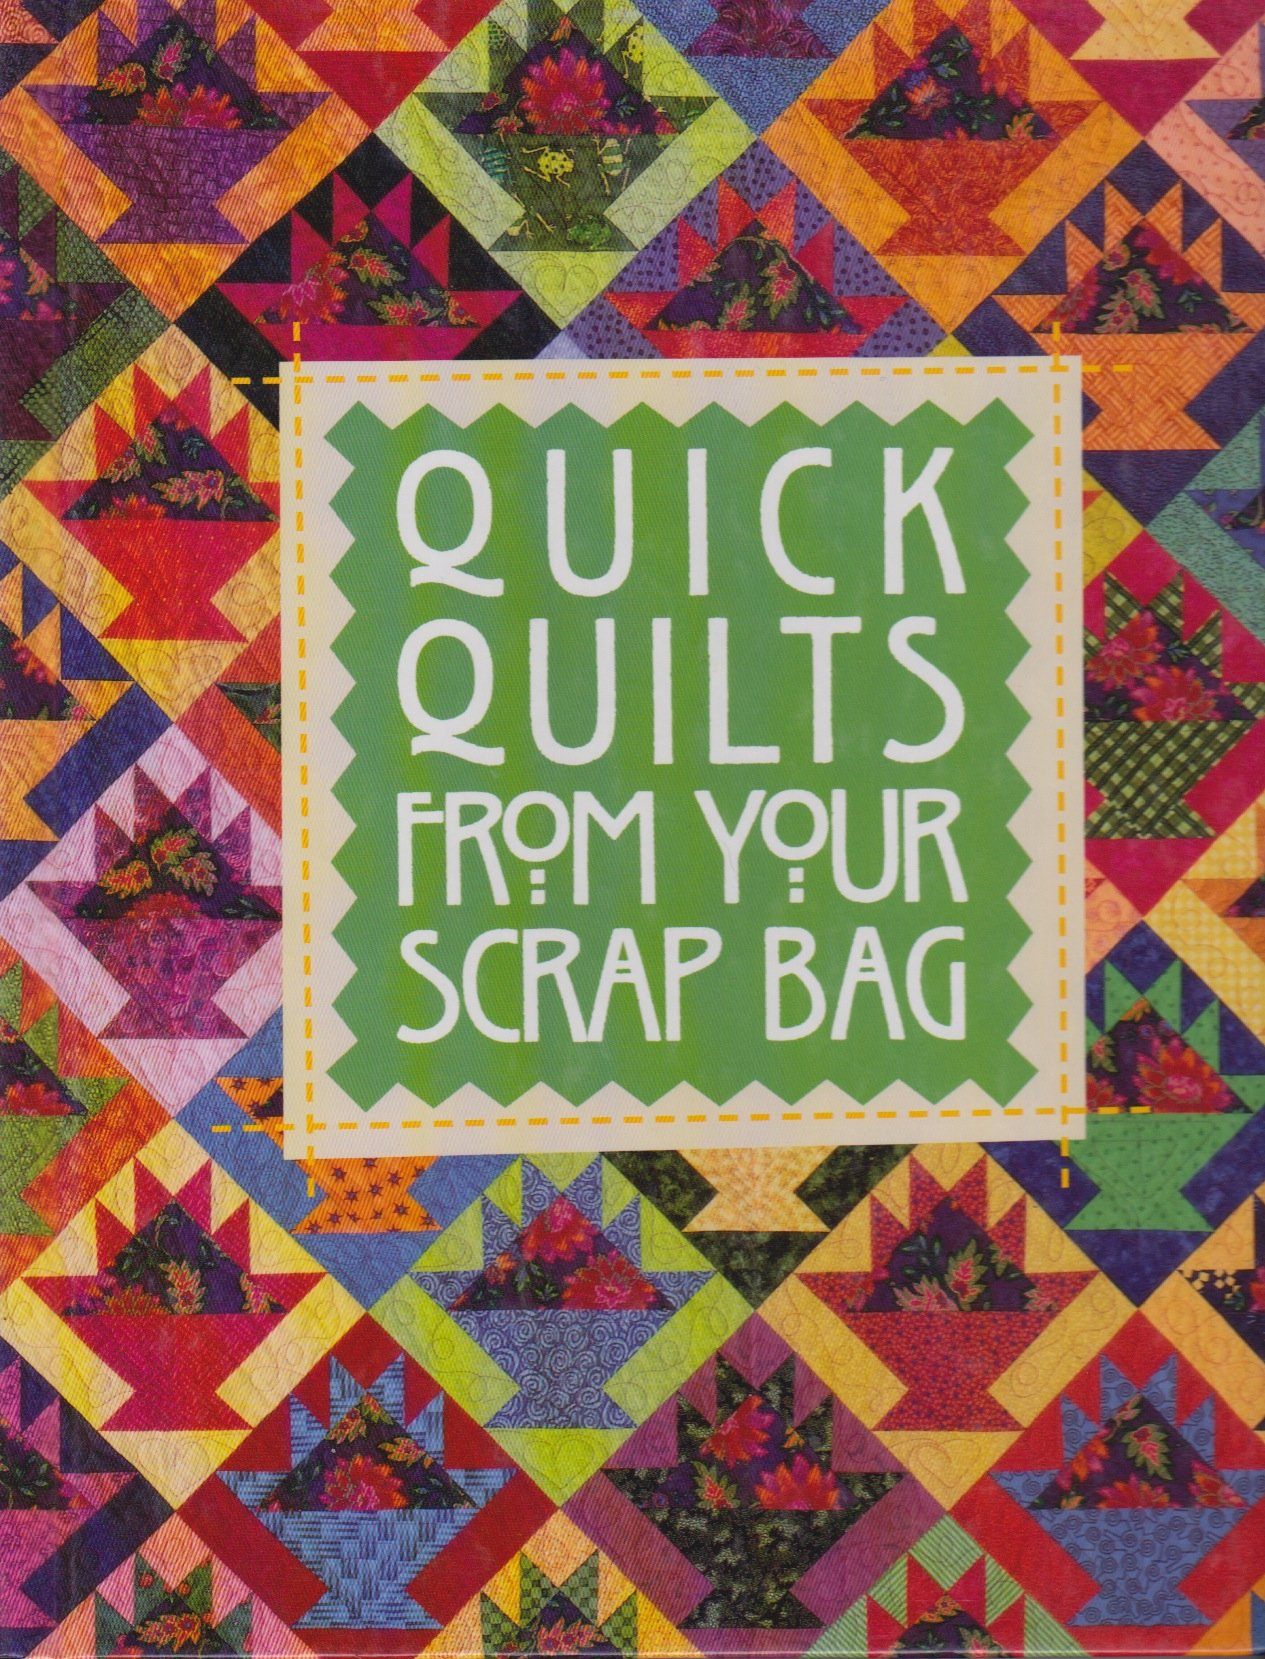 mayjune the fons quickly quilting quilt quick porter quilts company may june qqu